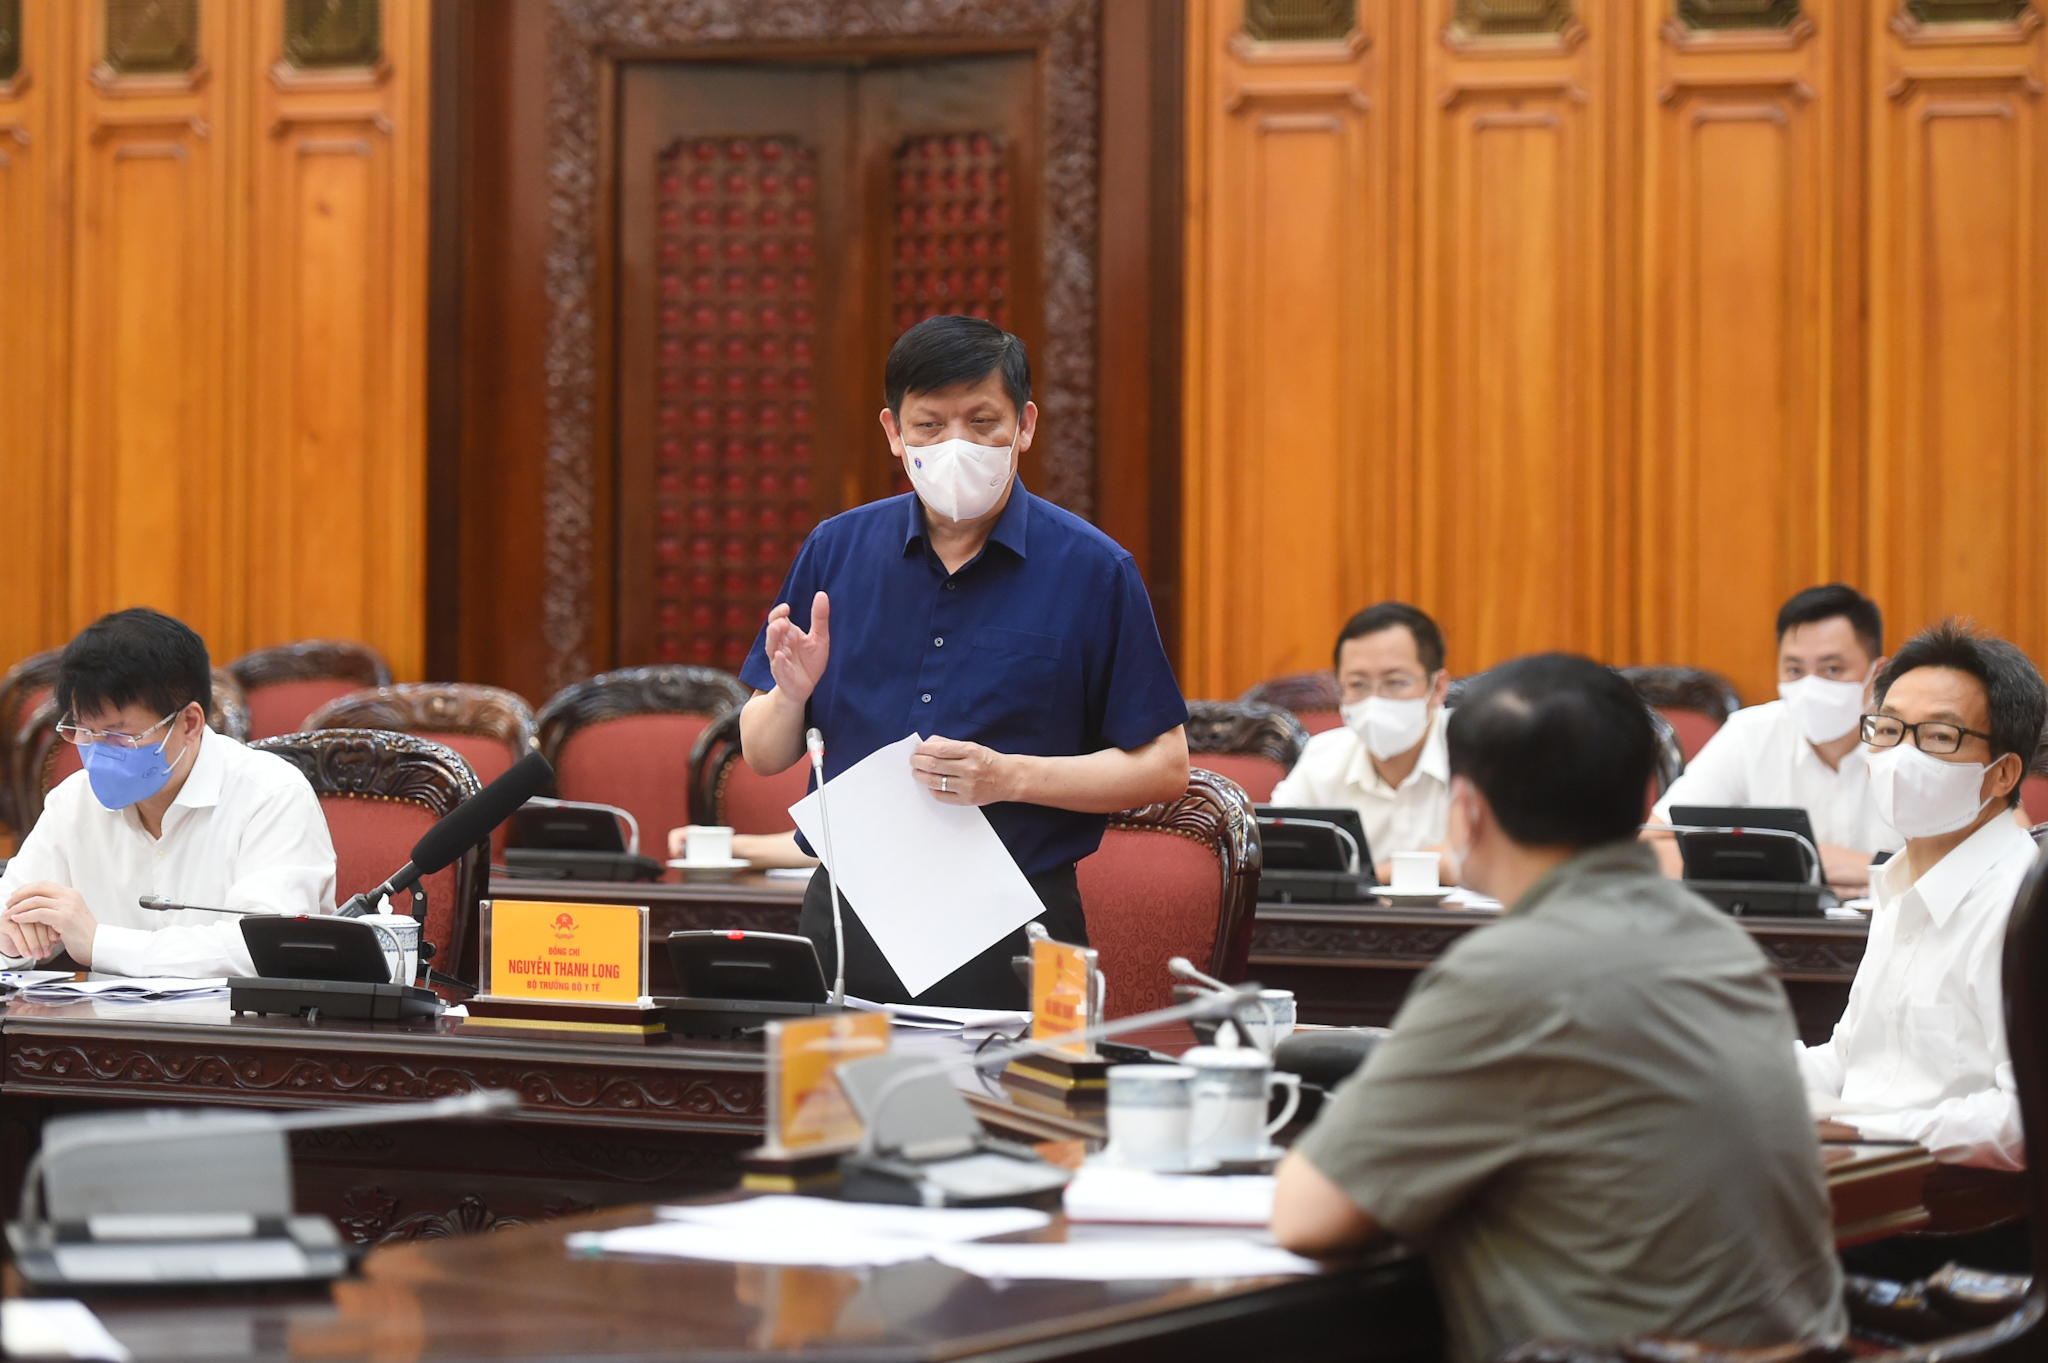 Prime Minister reminded Ba Ria - Vung Tau, Khanh Hoa, Da Nang about the prevention of Covid-19 epidemic - Photo 3.